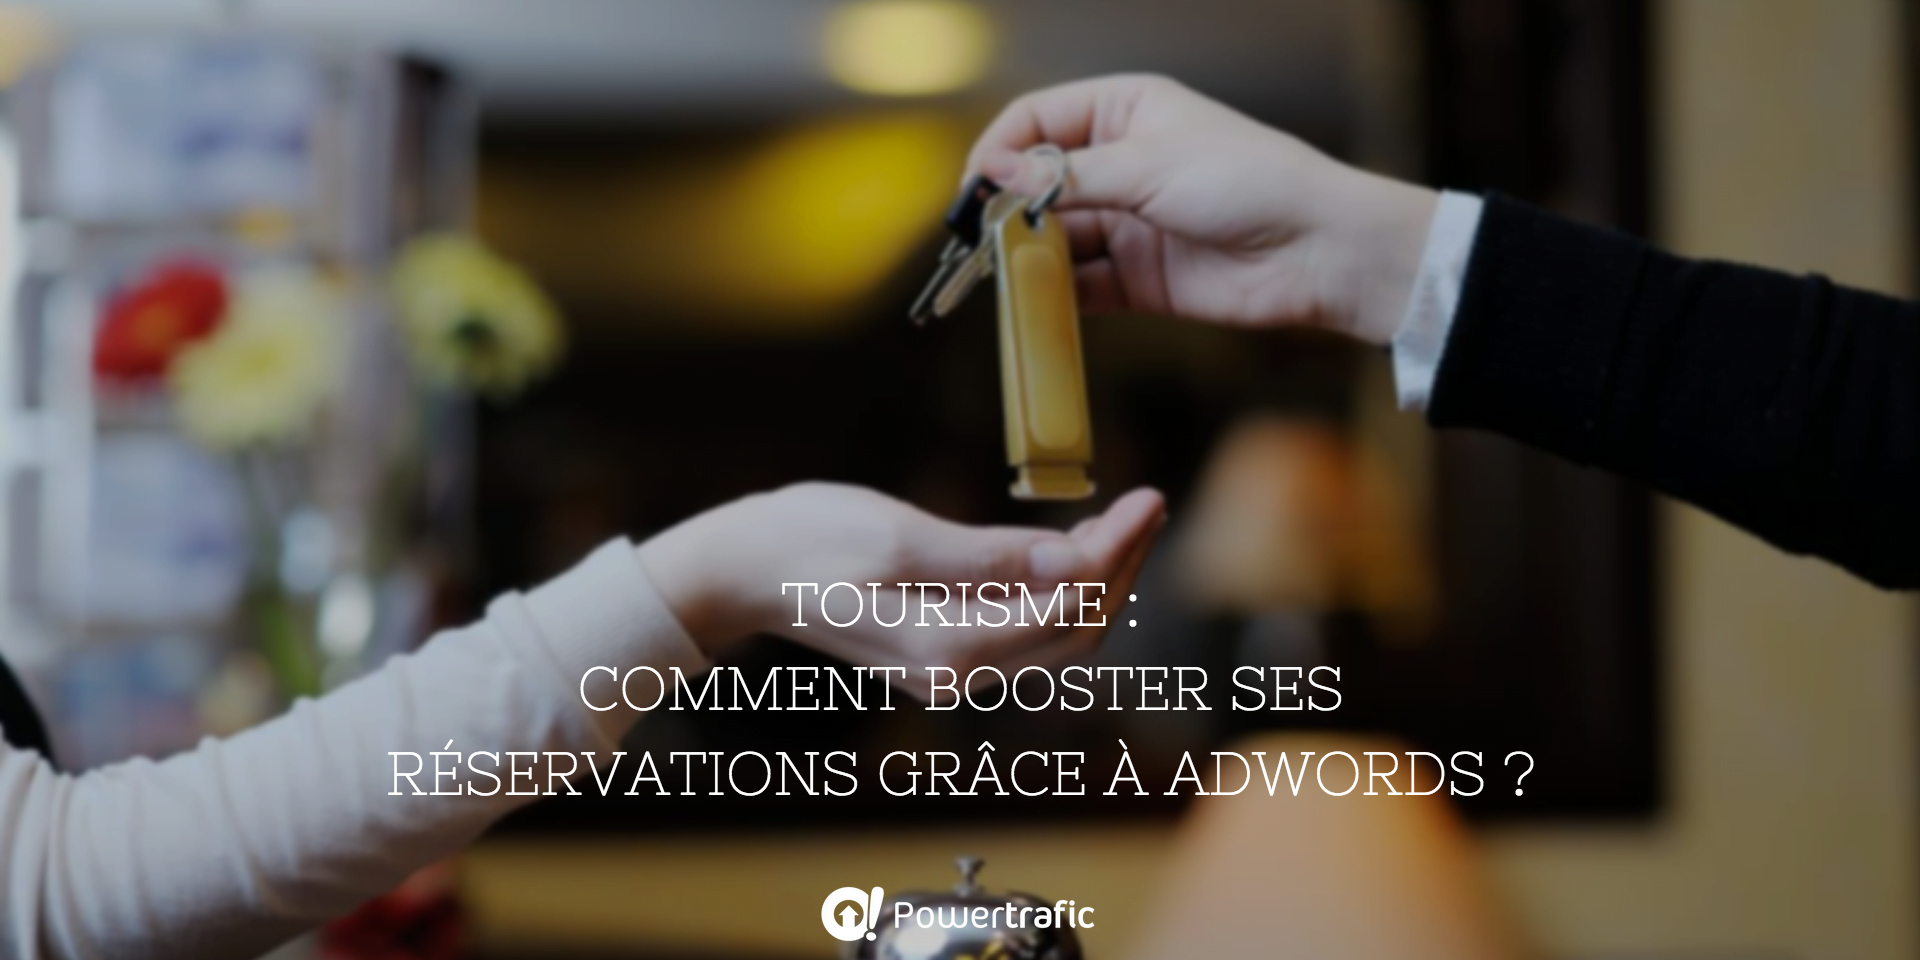 tourisme-booster-reservations-adwords